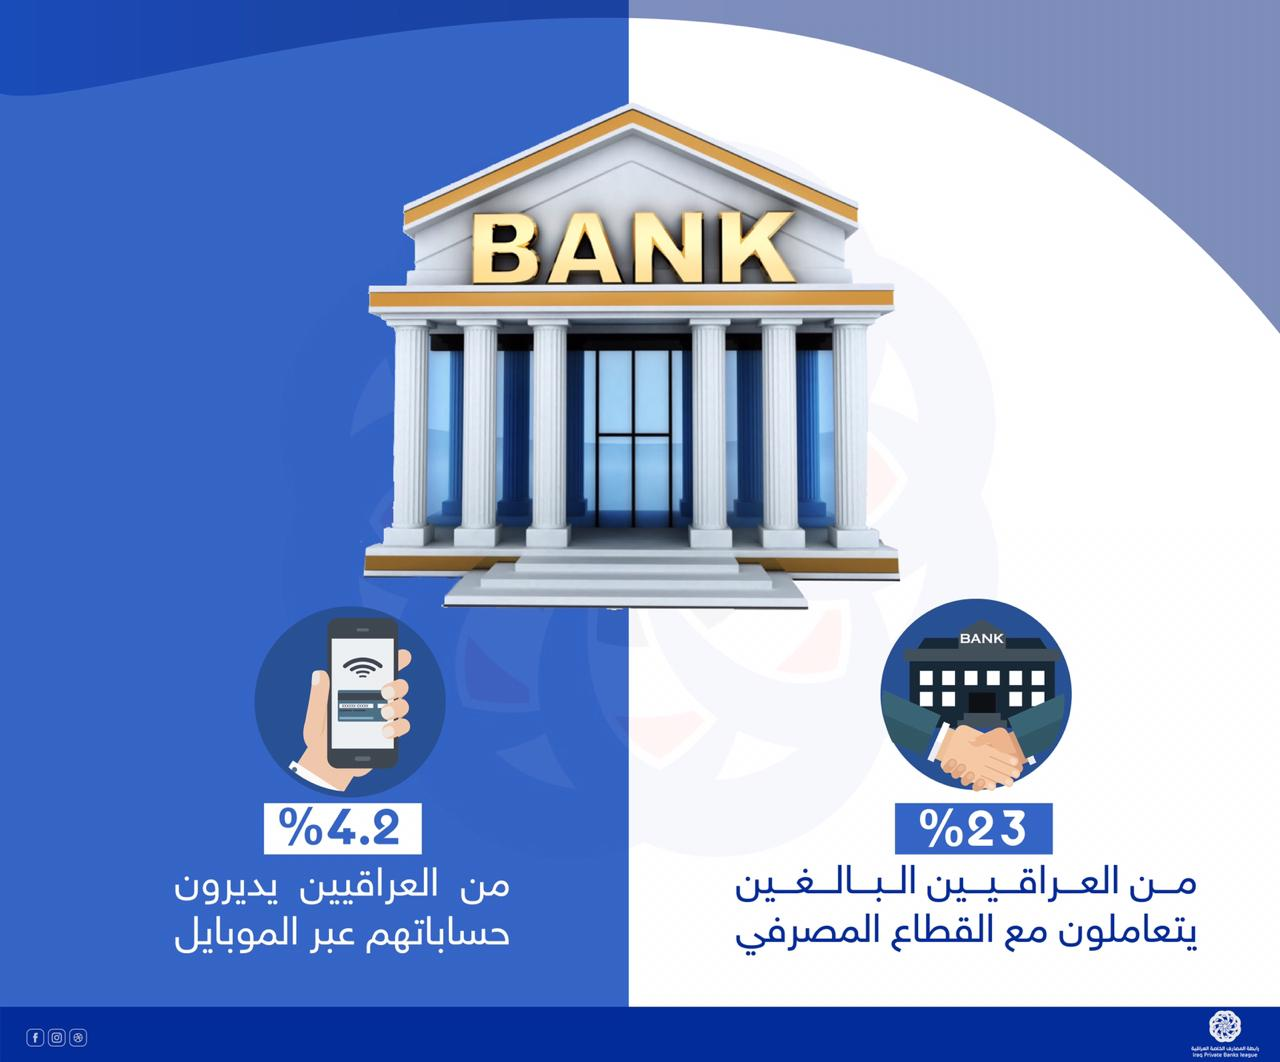 Association of Iraqi Private Banks: 23% of Iraqi adults deal with the banking sector 693